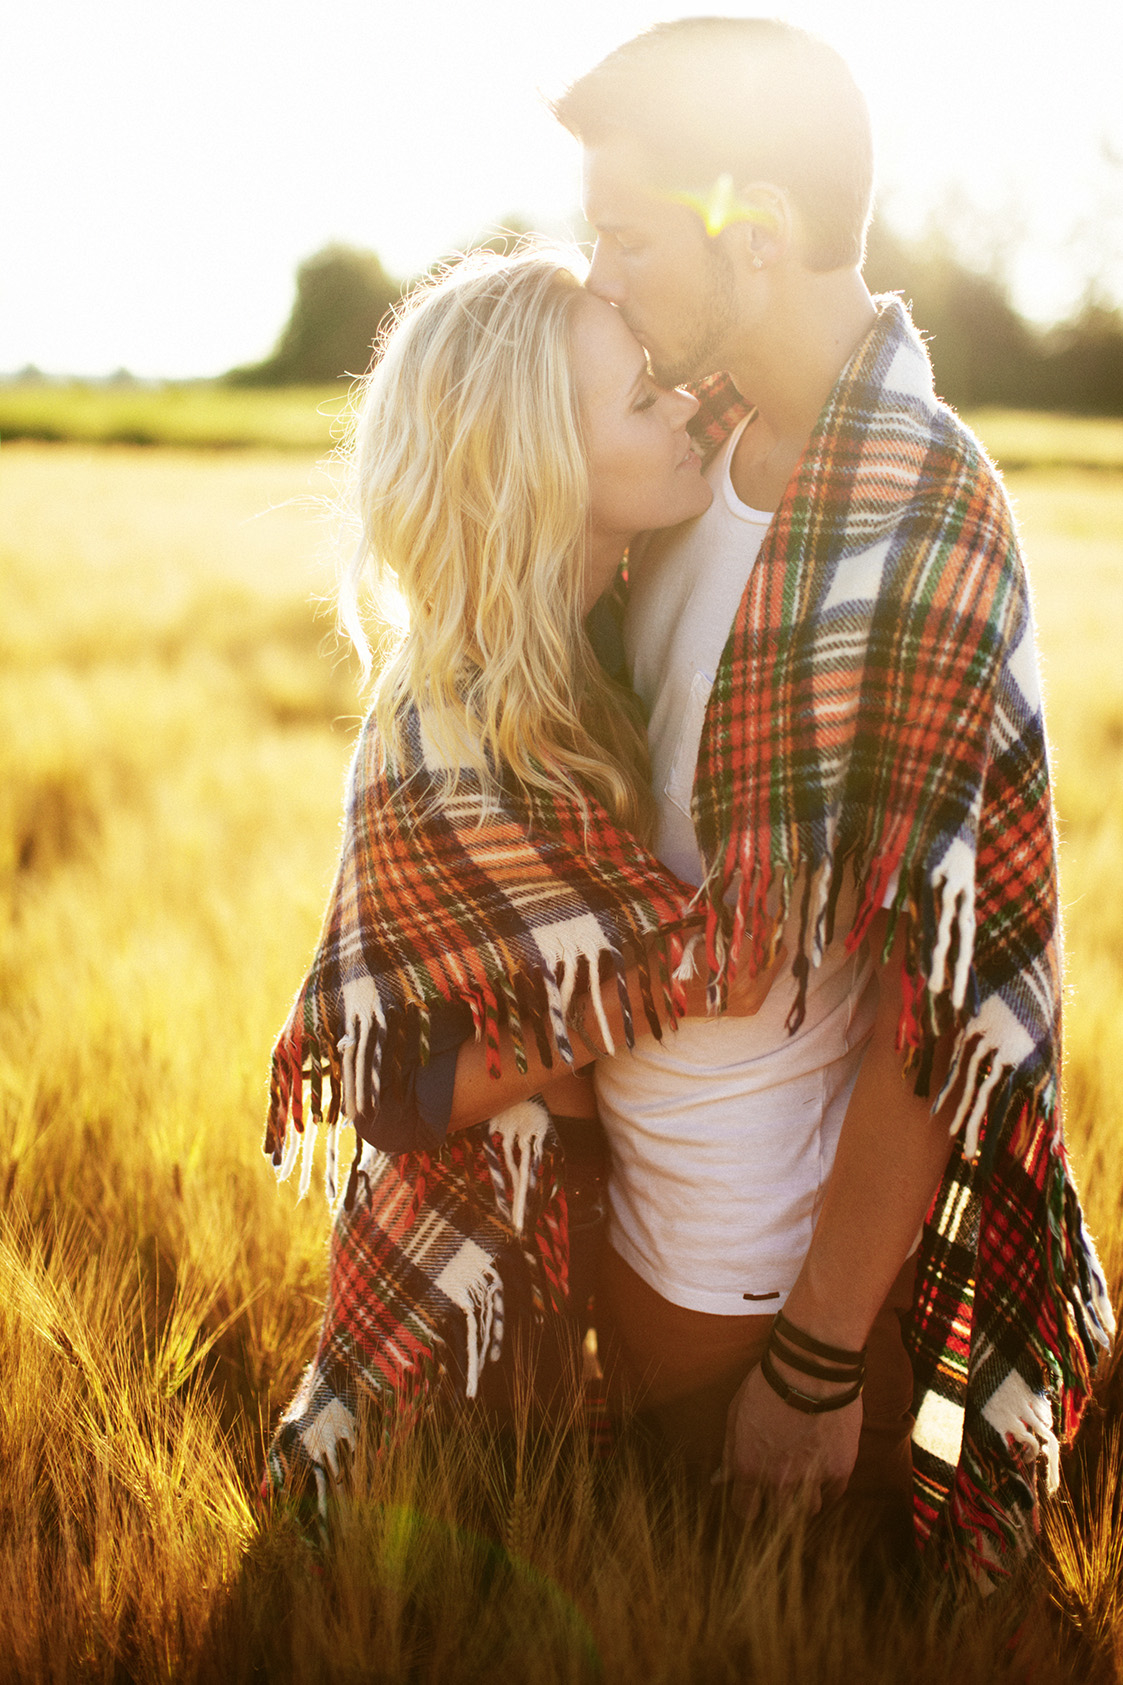 Image 7 of Cute Engagement Photo Ideas and Poses: Find Inspiration for Your Own Shoot!